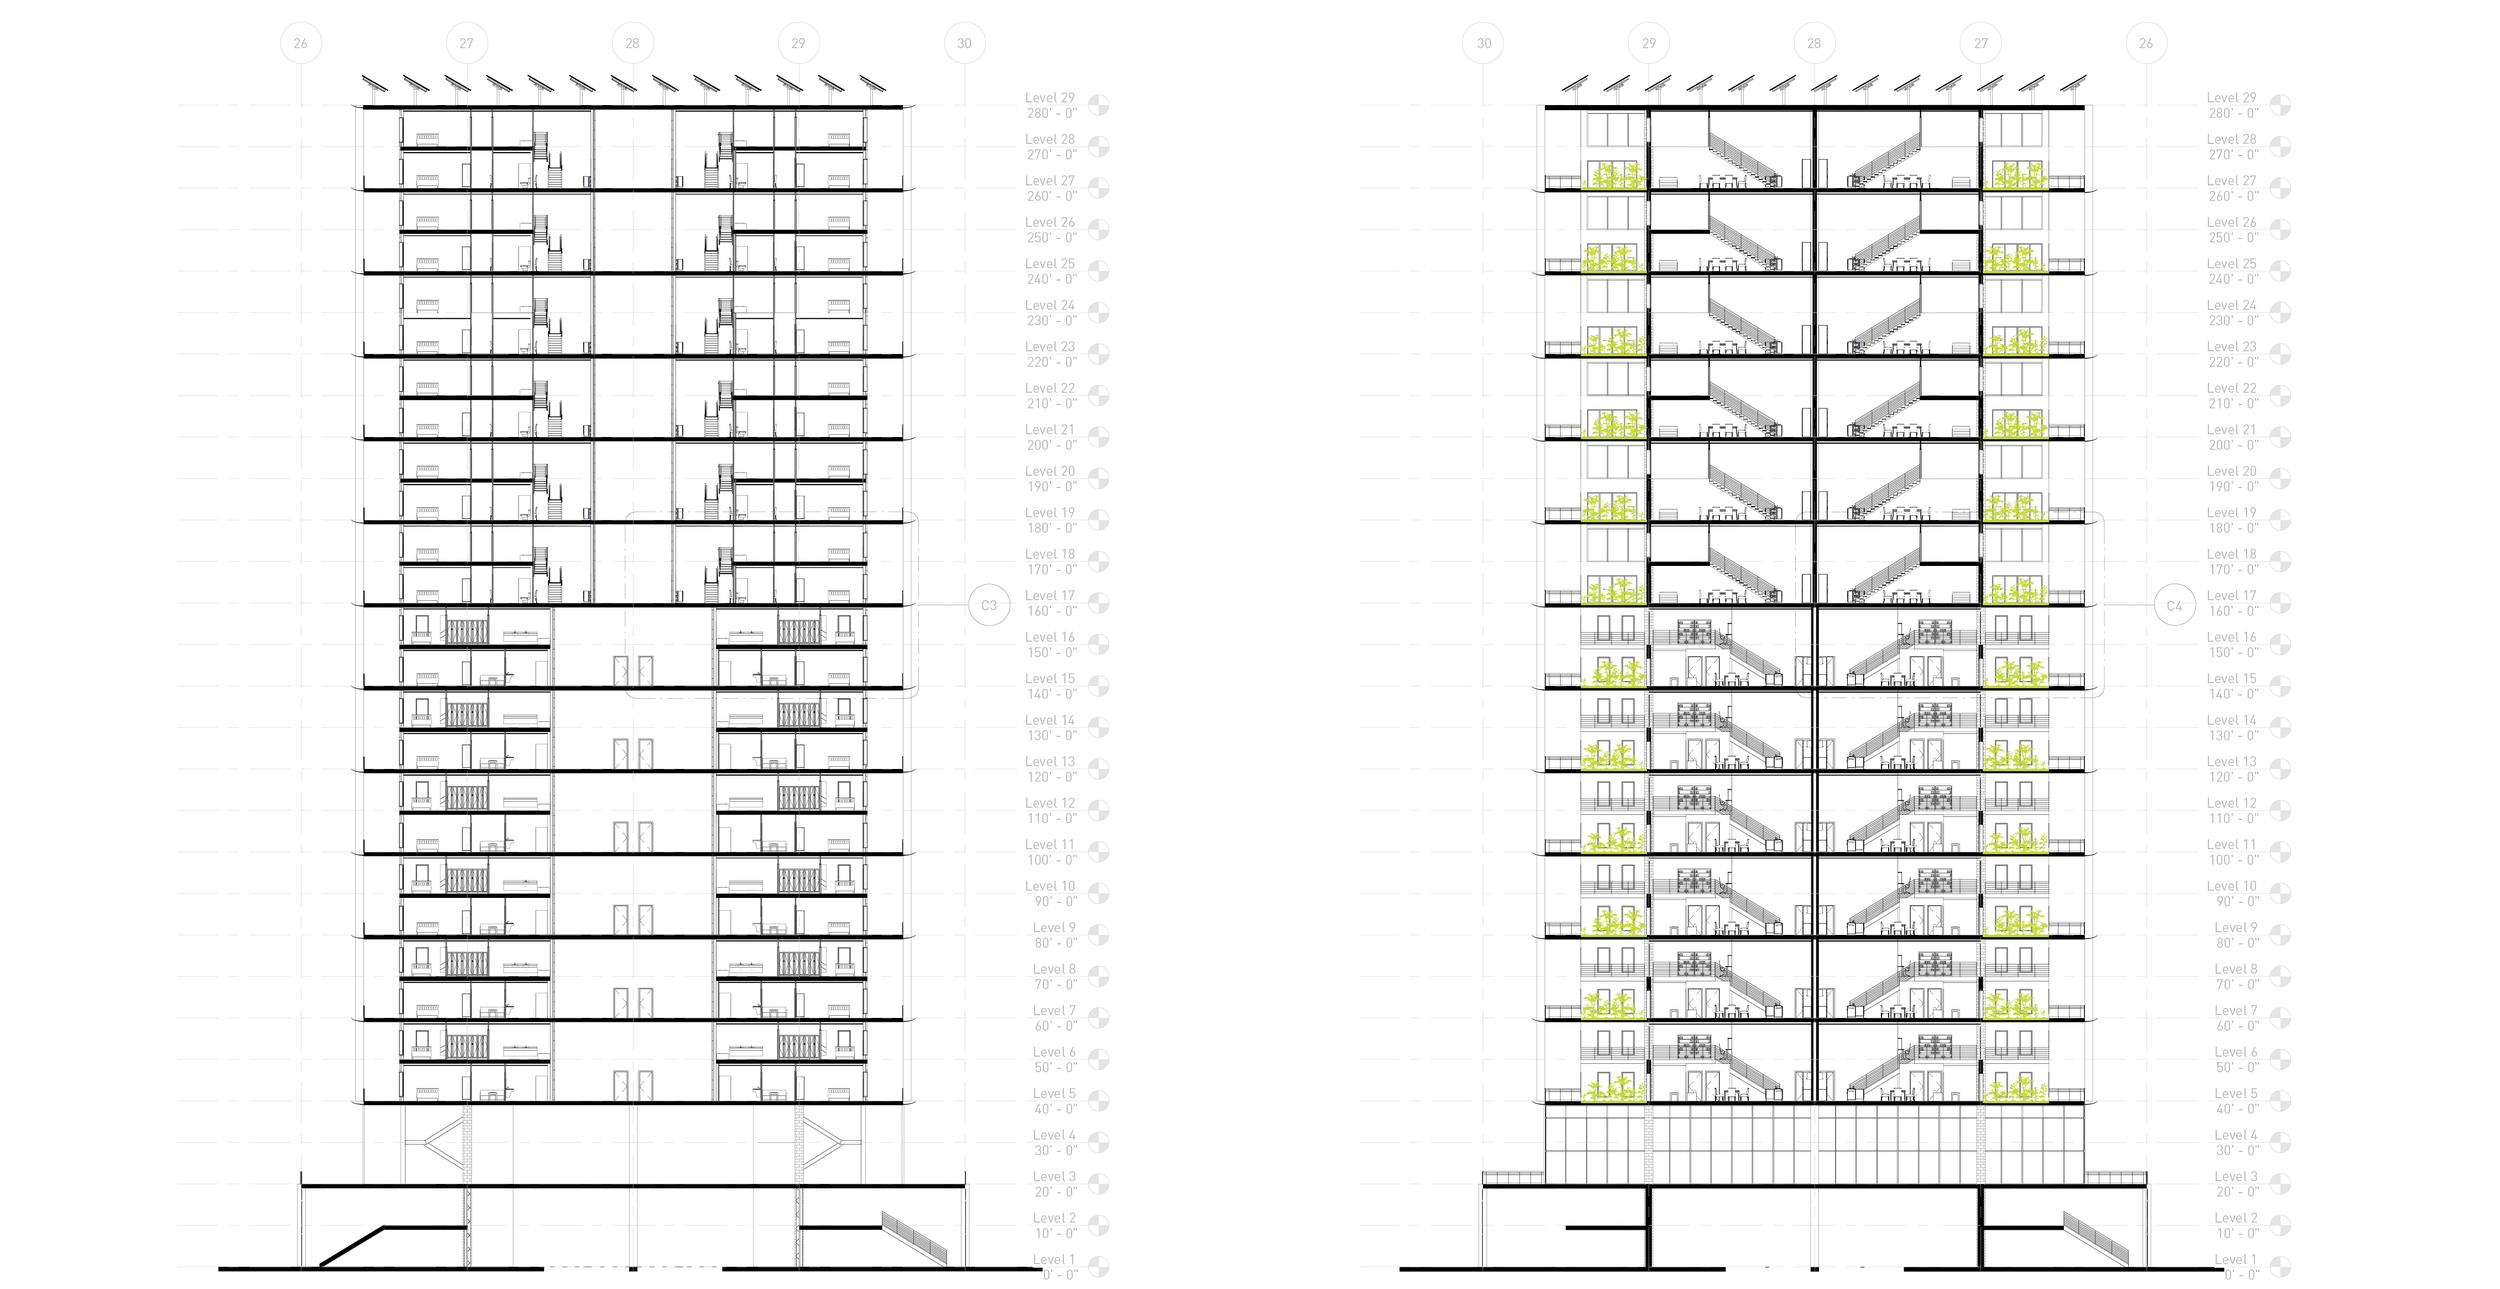 Building Type A Section B3 and B4